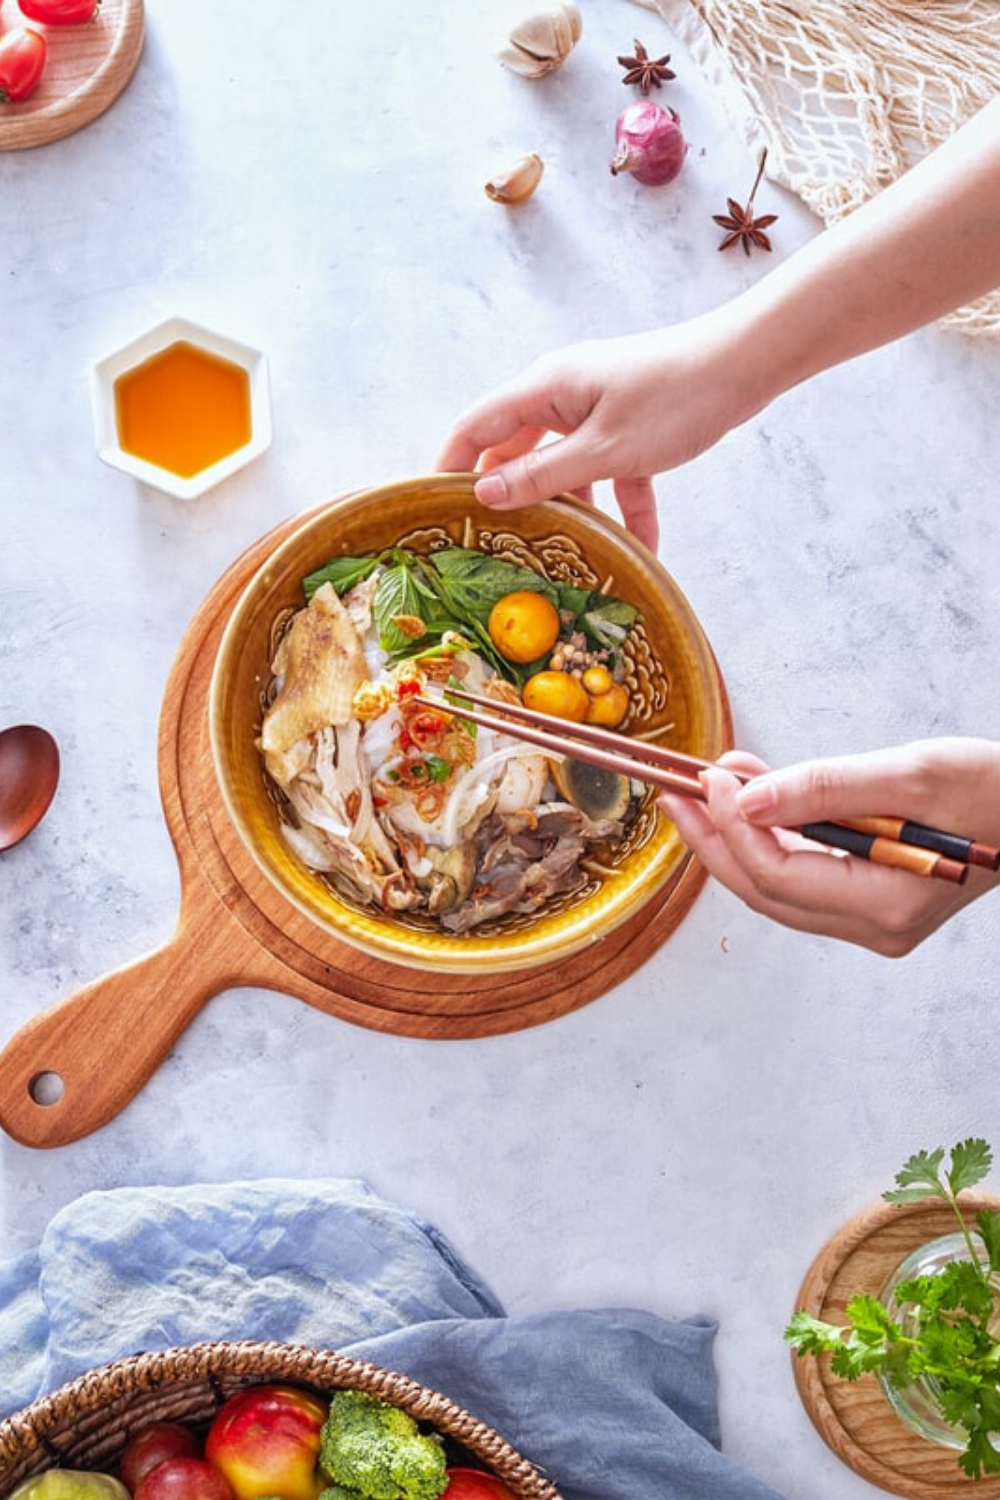 The exploration of food streets and the dandy Viet cuisine will be an un-pho-getable experience for you. #vietnamesefood #indonesia #malaysia #food  #travelblogger #vietnamtrip